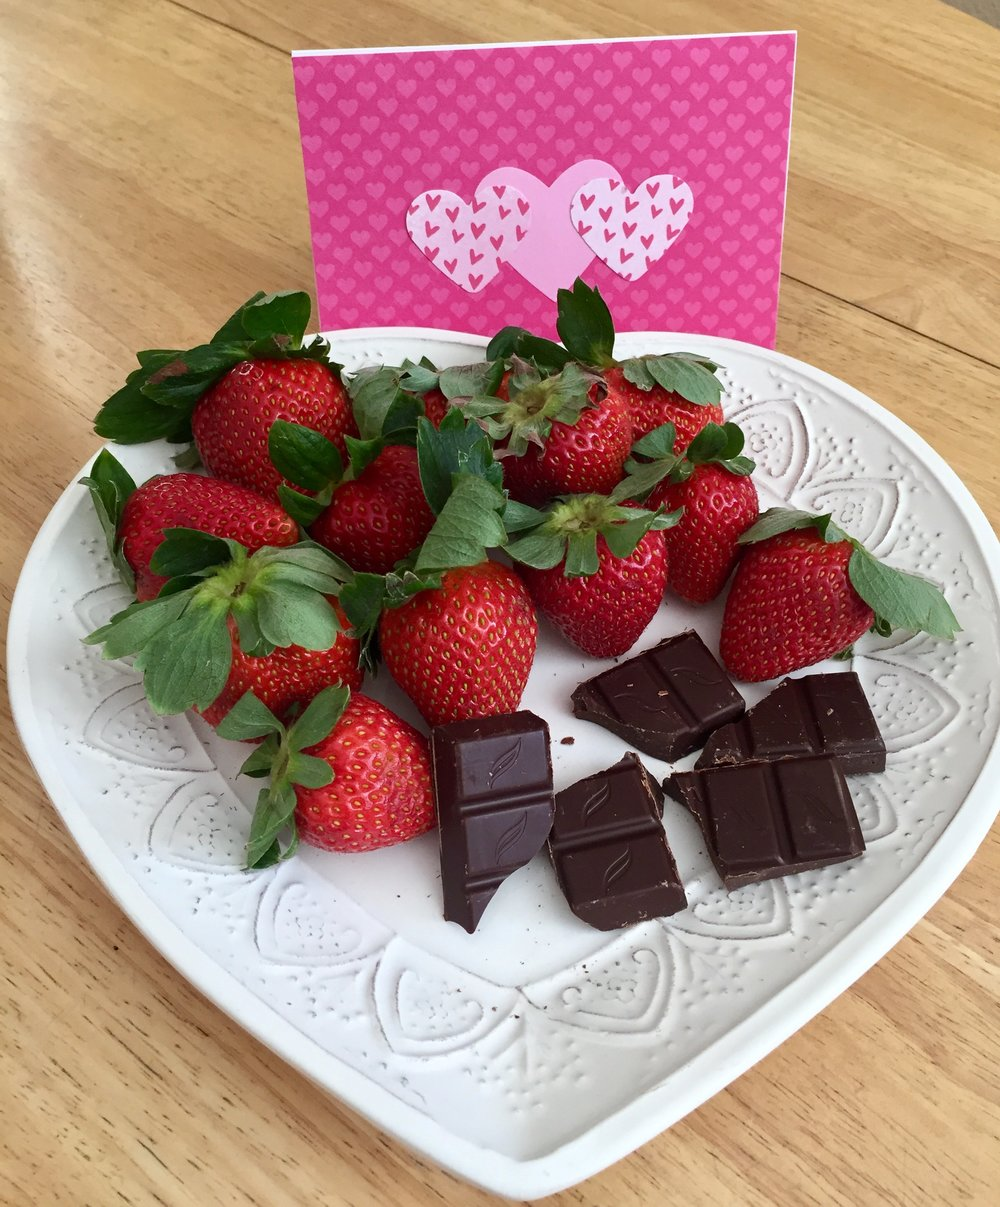 For a sweet treat, enjoy berries with some dark chocolate!